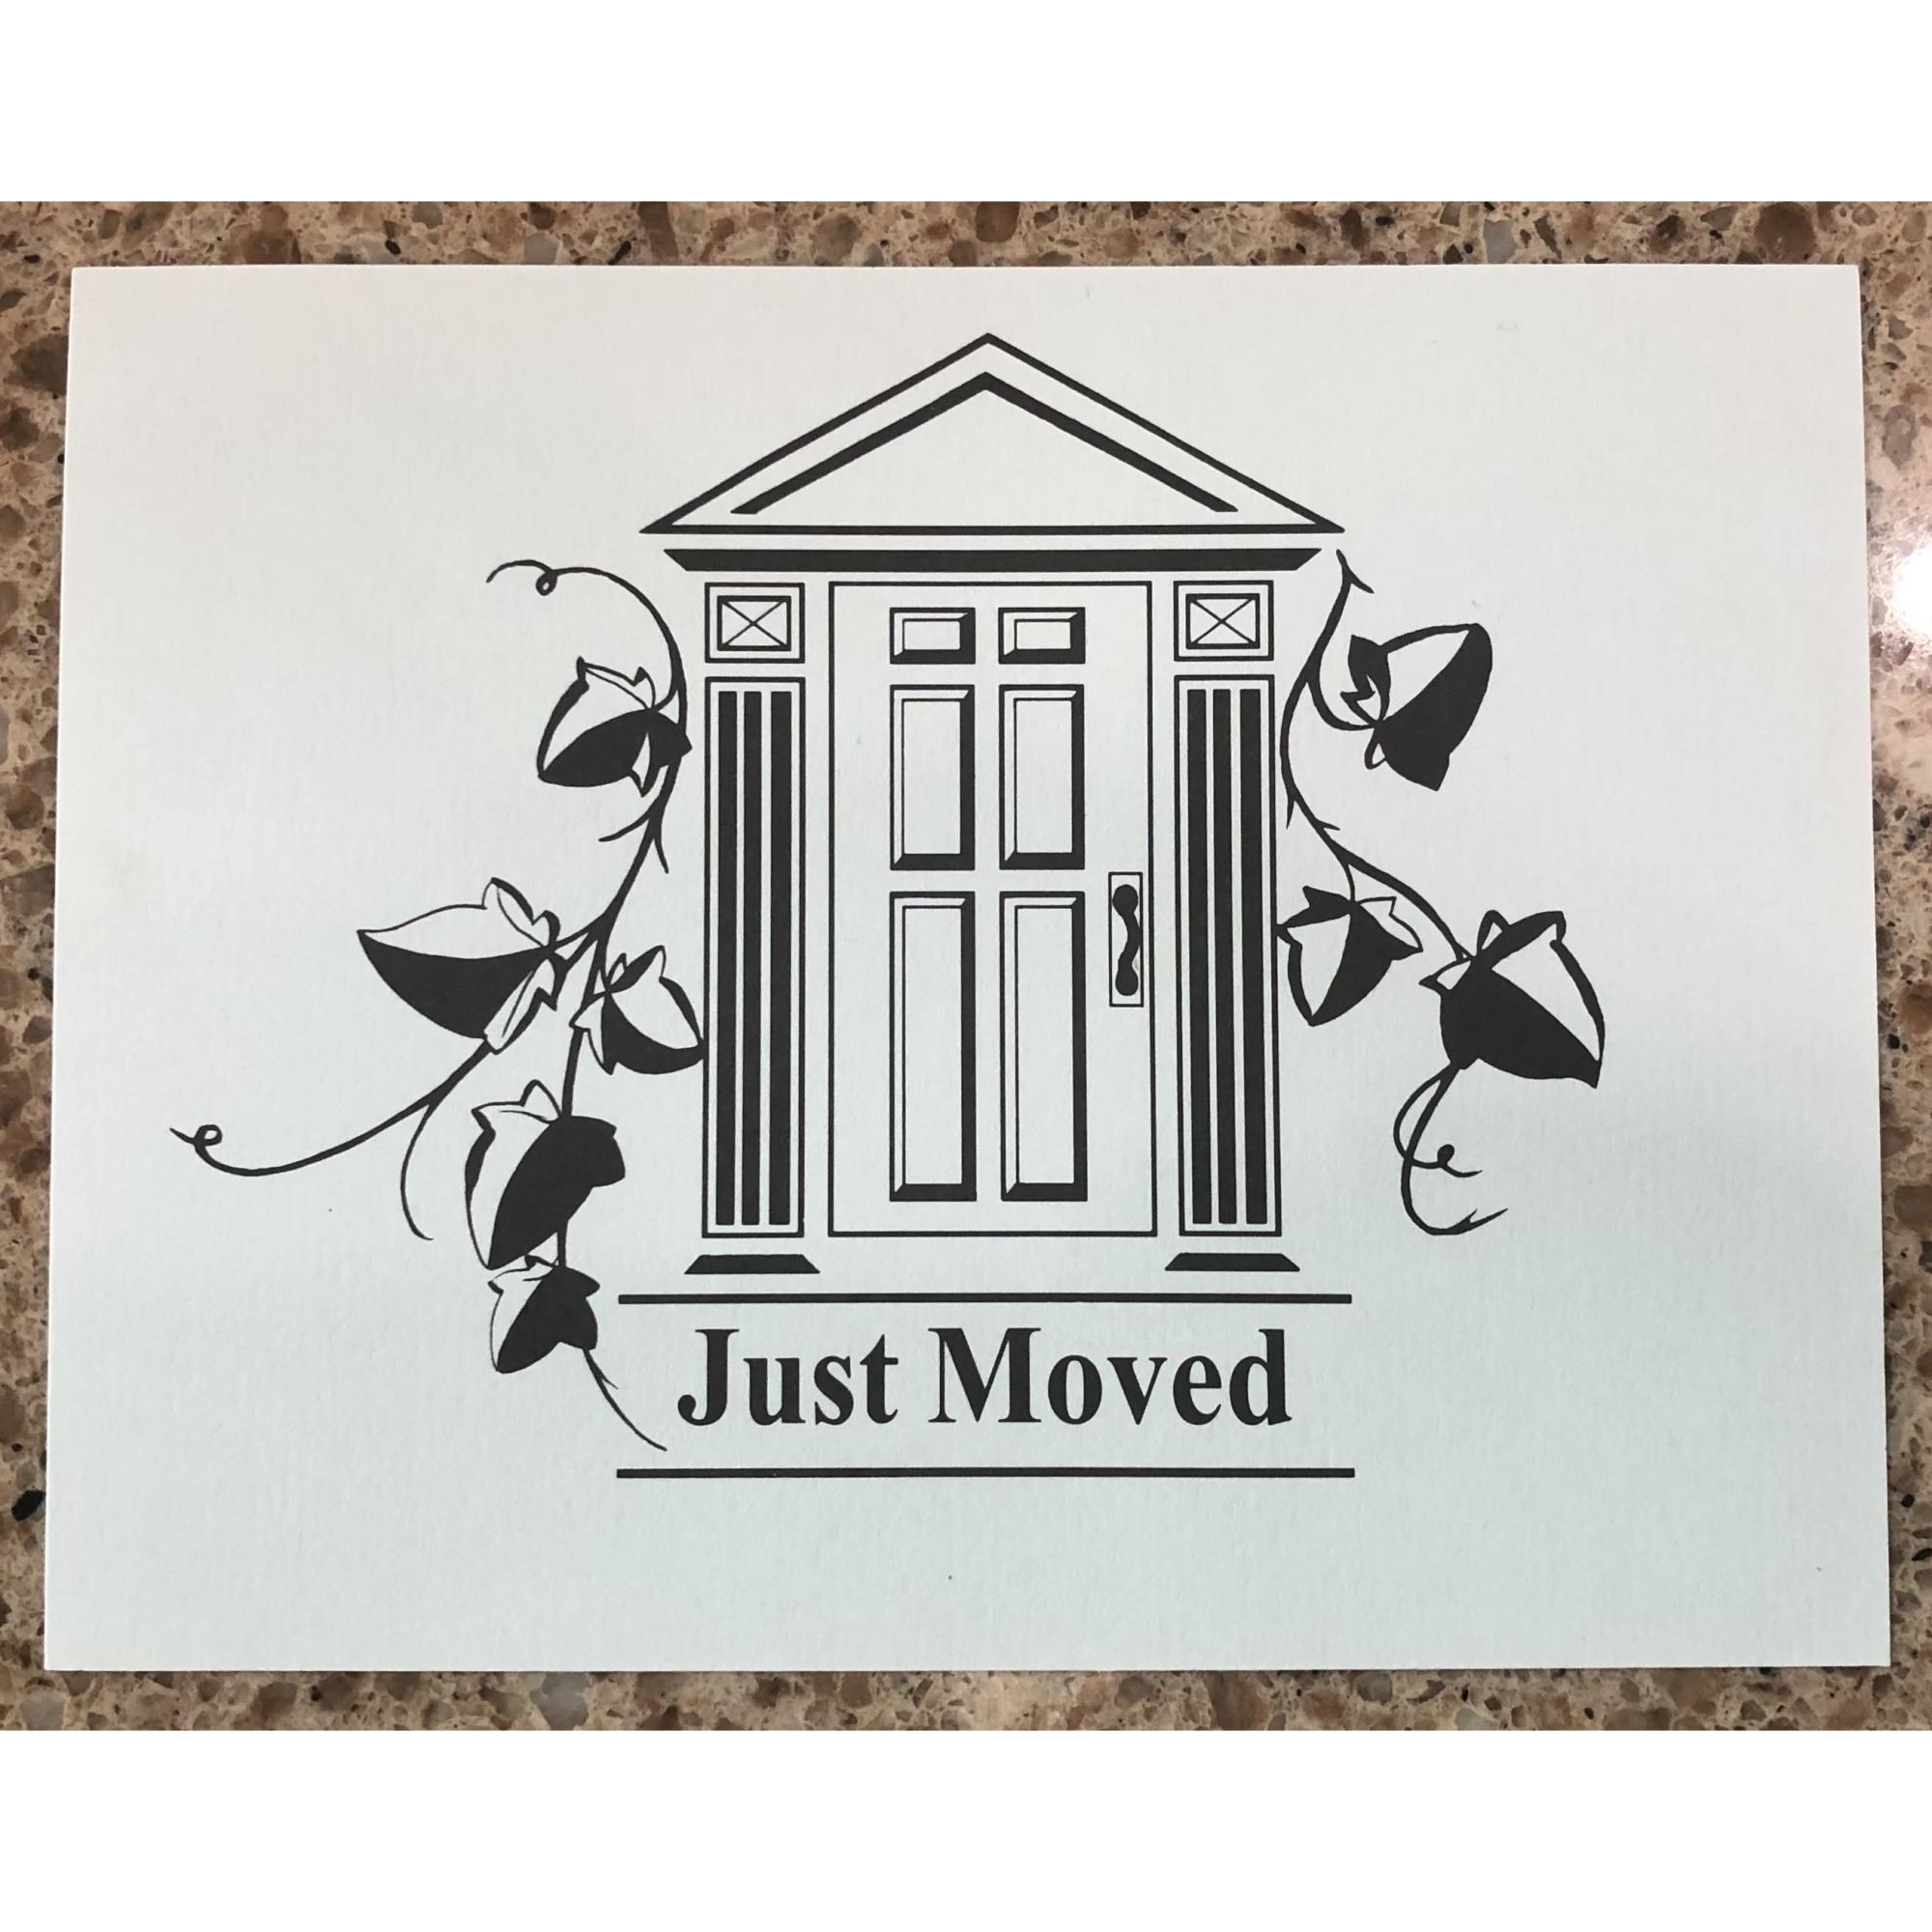 Just Moved Cards provided by WCREALTORS